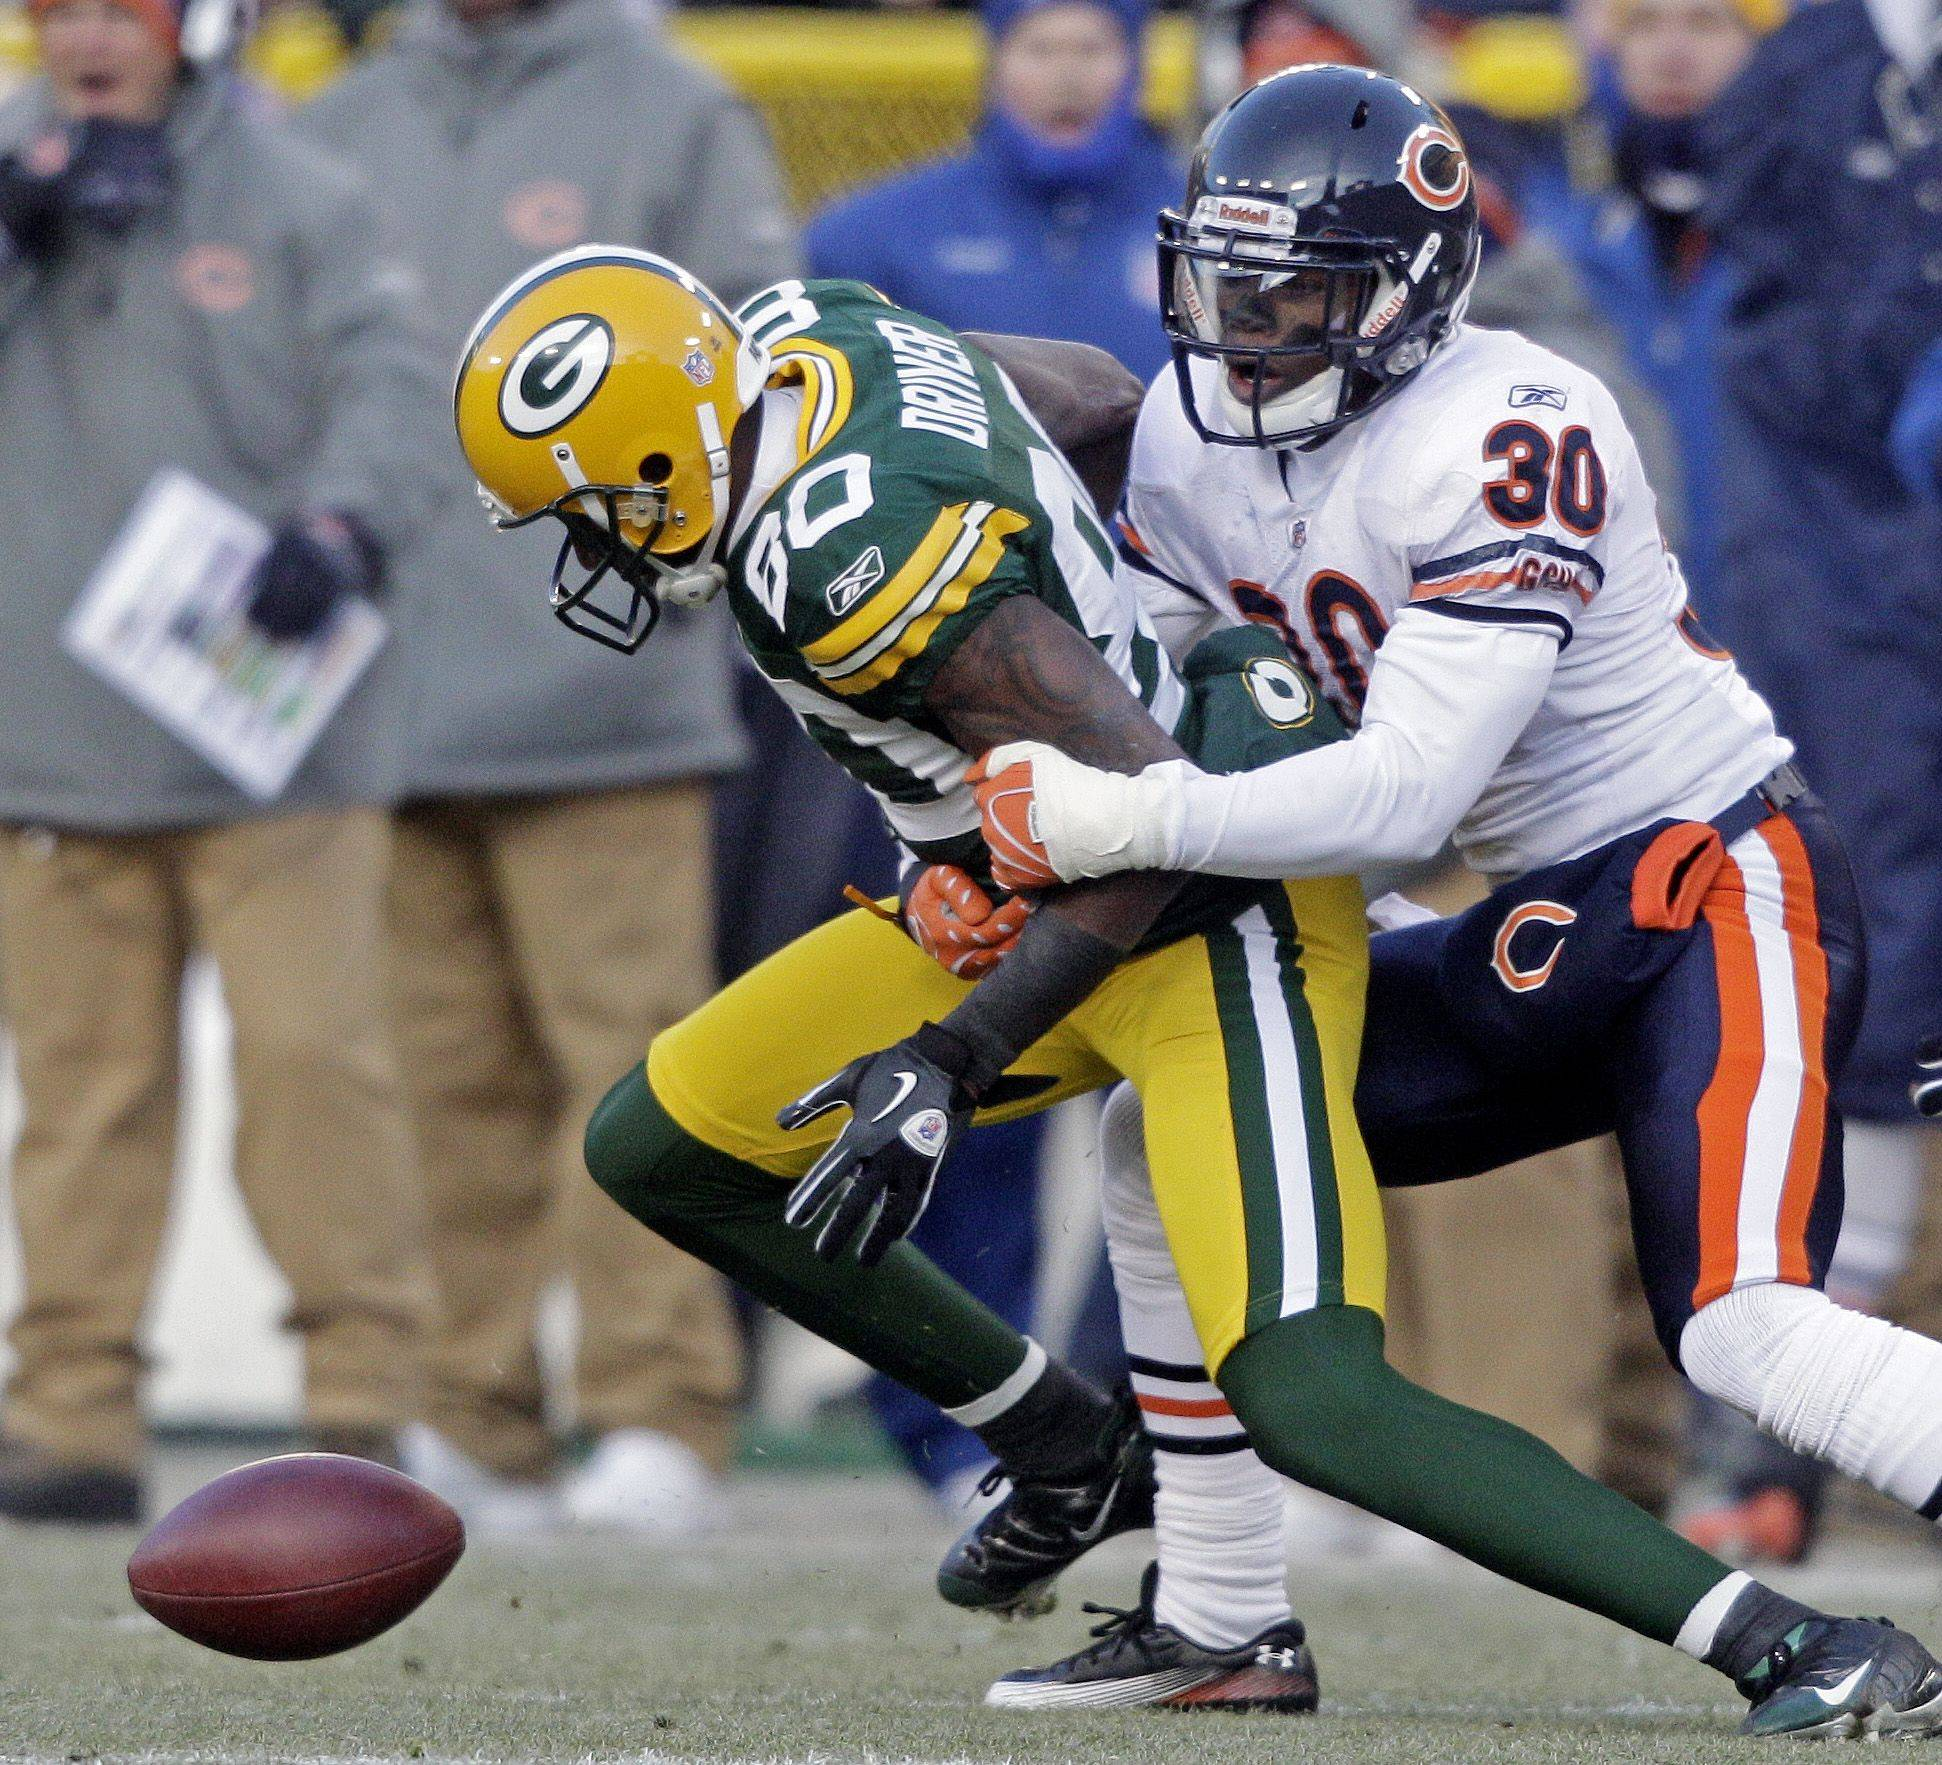 Green Bay Packers' Donald Driver fumbles as he is tackled by Chicago Bears' D.J. Moore after a catch during the first half. Driver recovered the fumble.